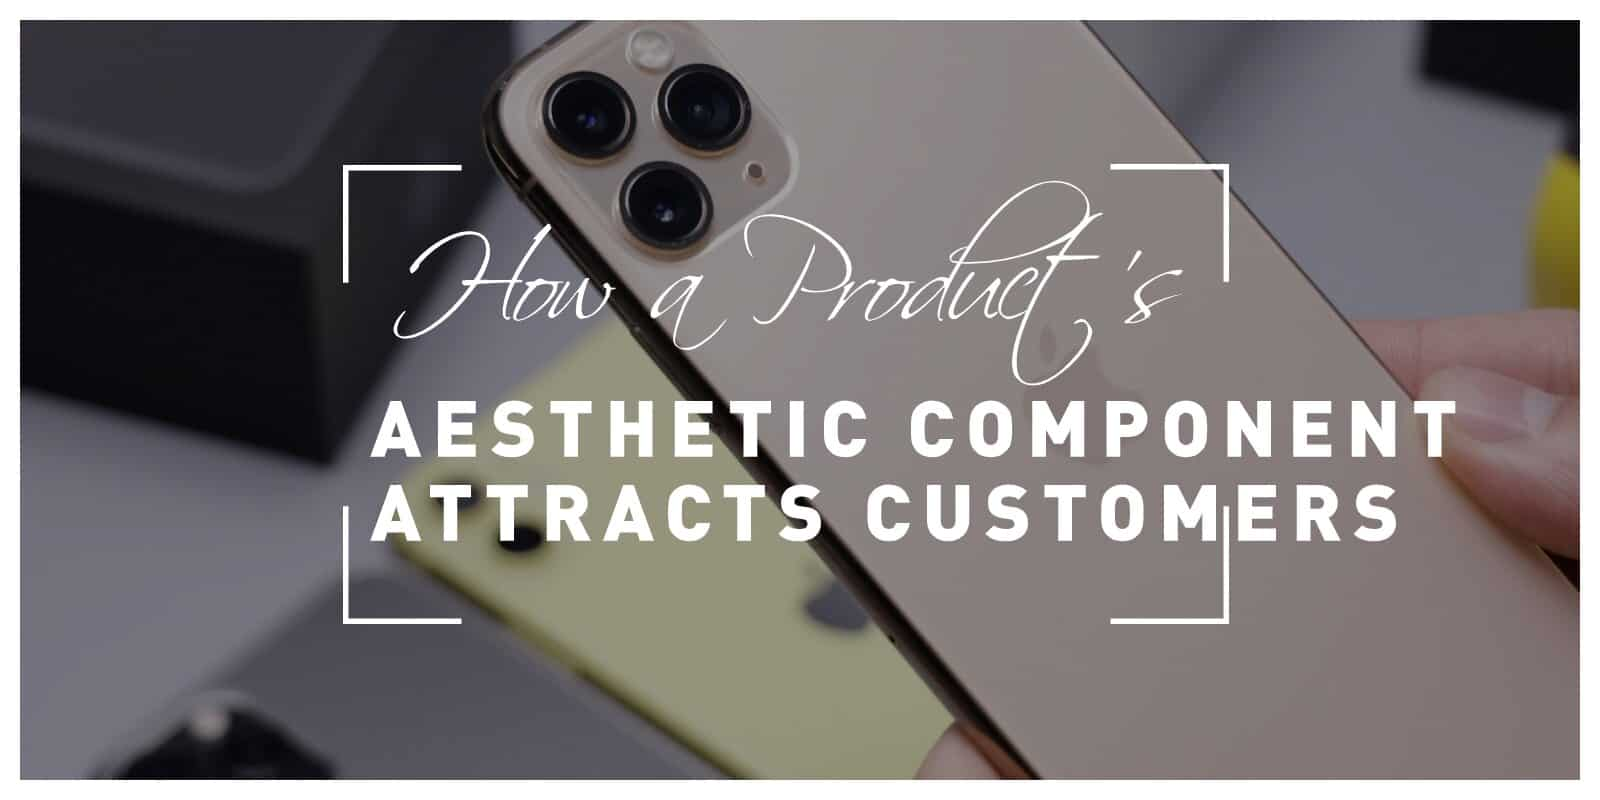 How The Aesthetic Component Of A Product Attracts New Customers